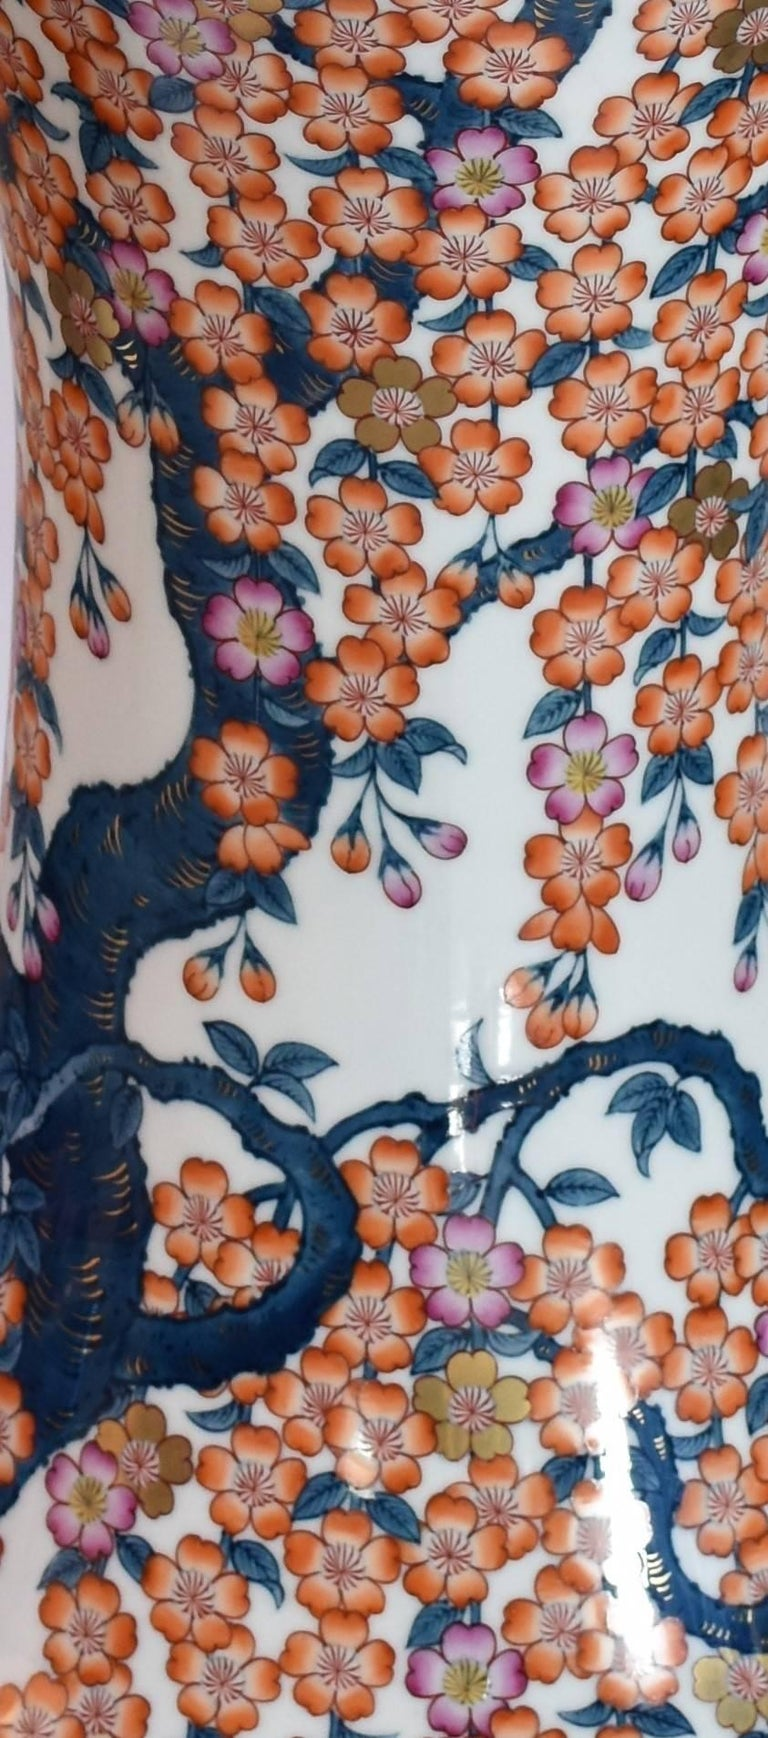 Japanese Hand-Painted Massive Imari Porcelain Vase by Master Artist In Excellent Condition For Sale In Vancouver, CA